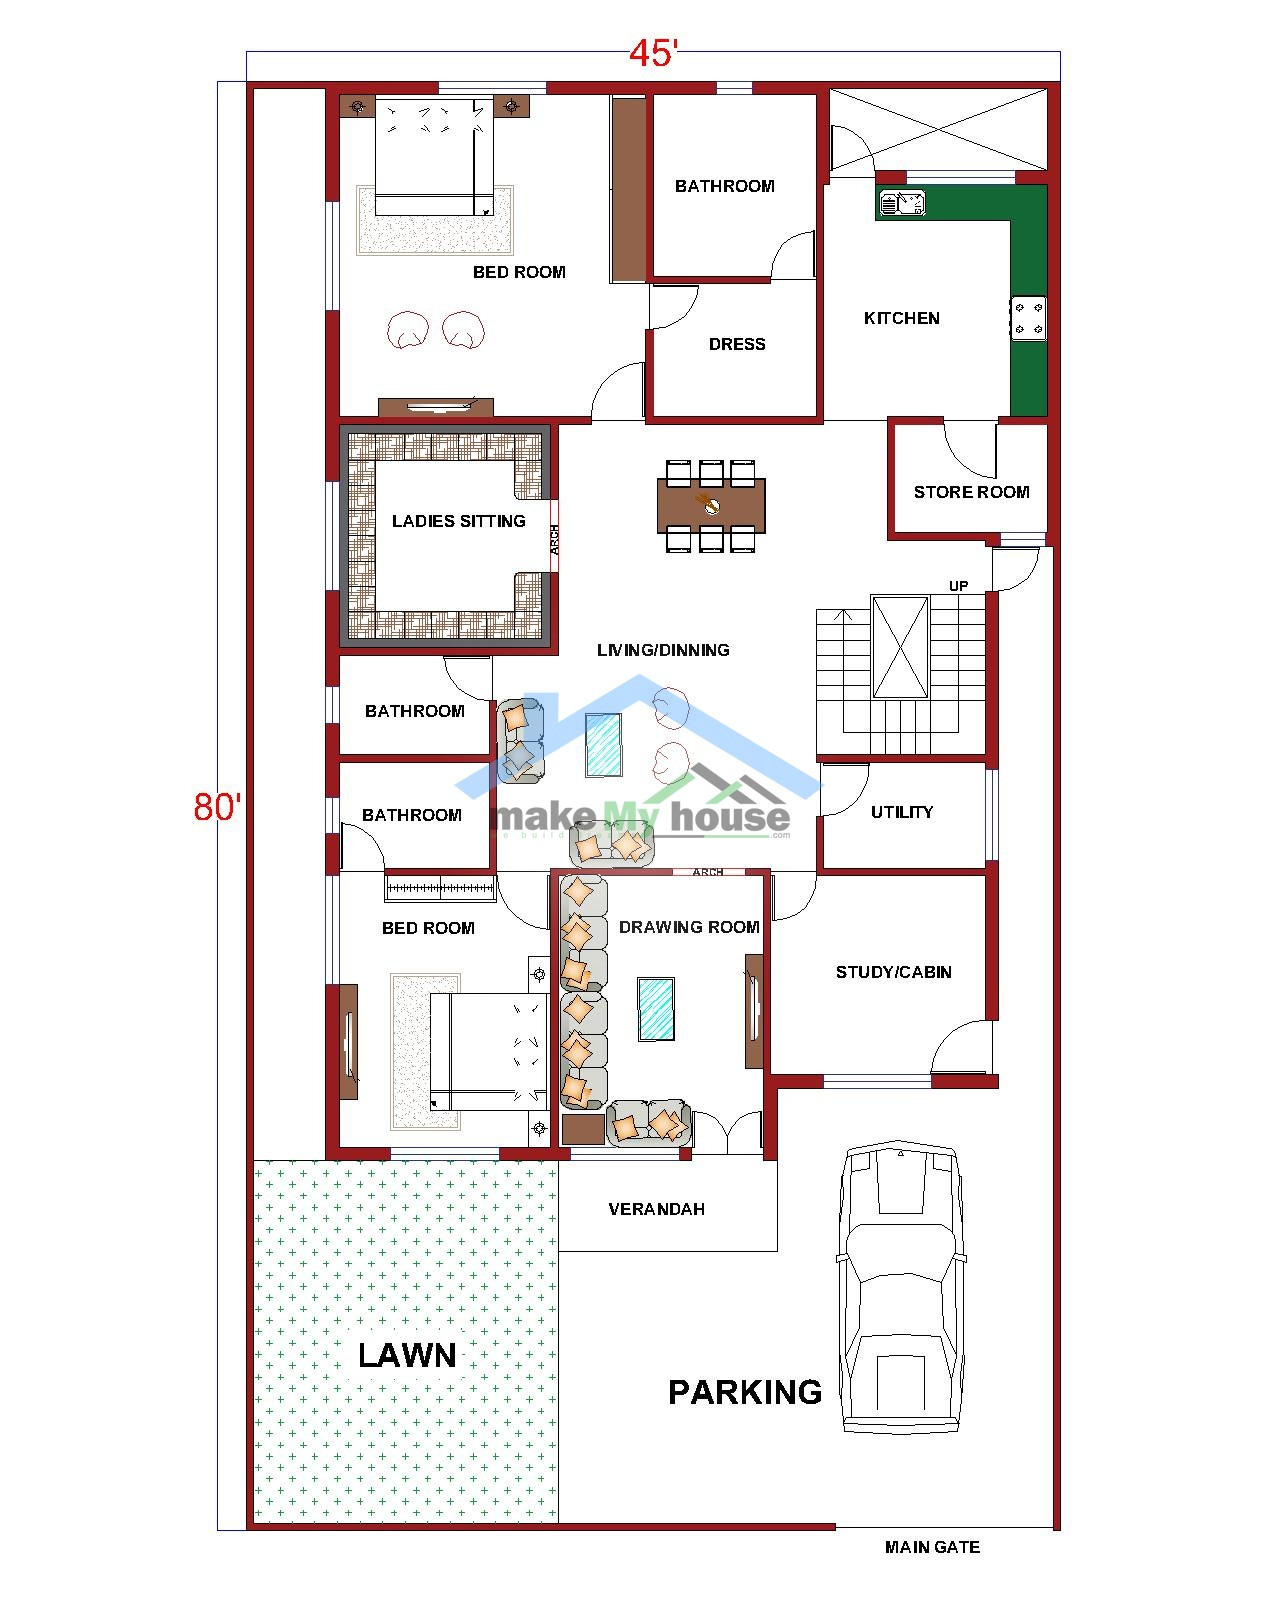 3600 Sq Ft House Plans India Inspirational Buy 45x80 House Plan 45 by 80 Elevation Design